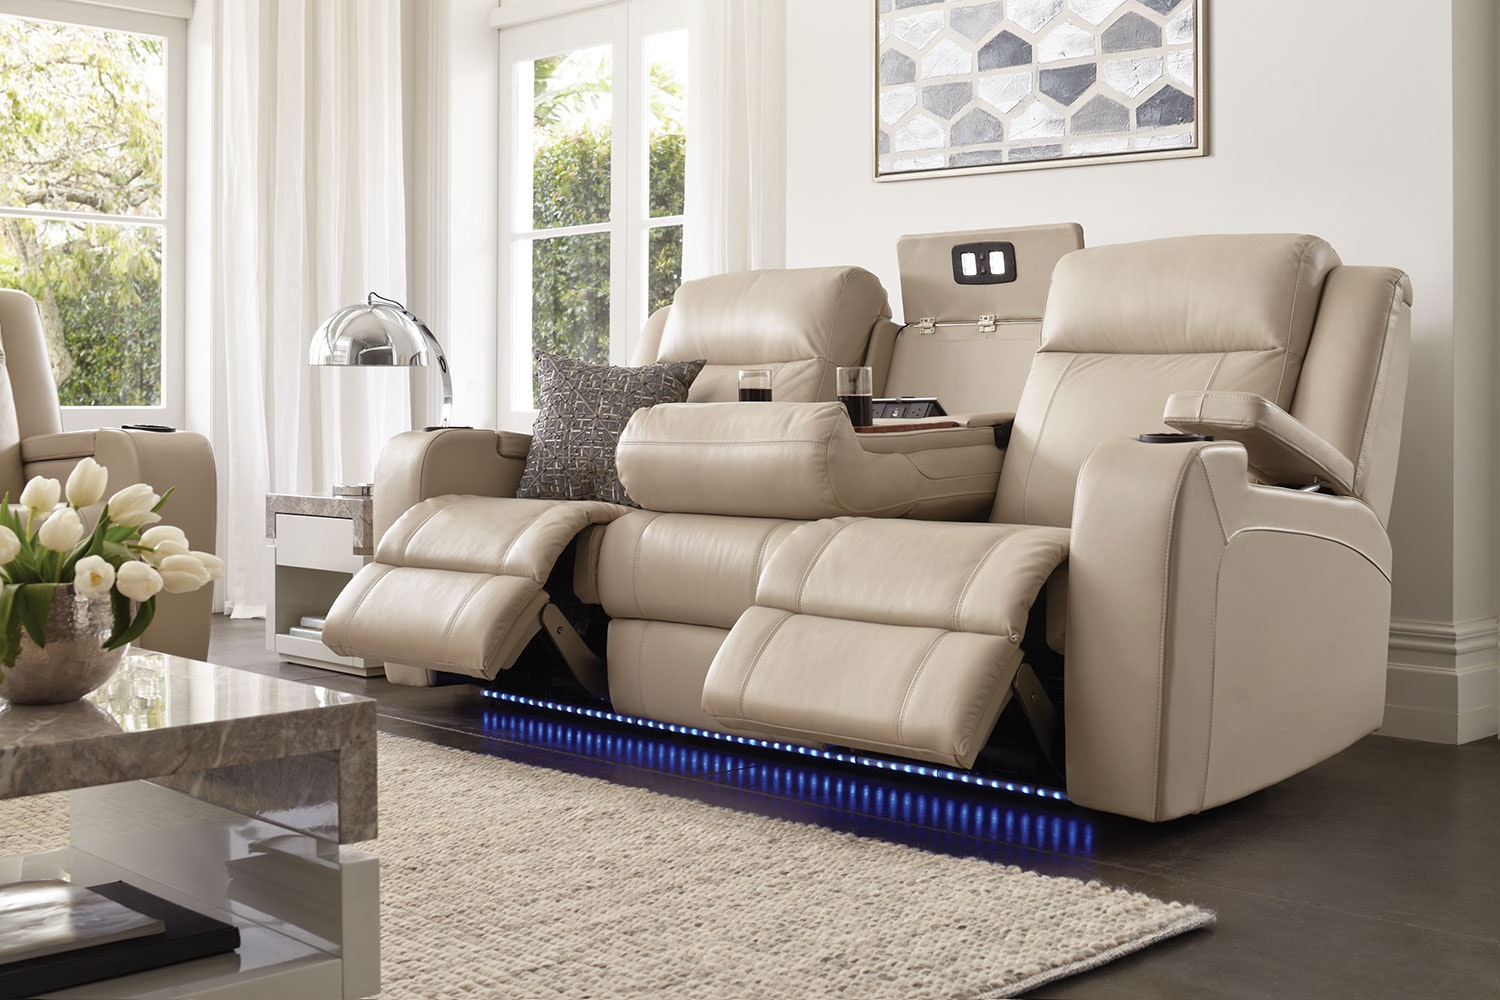 Marina 3 Seater Leather Recliner Sofa by Synargy